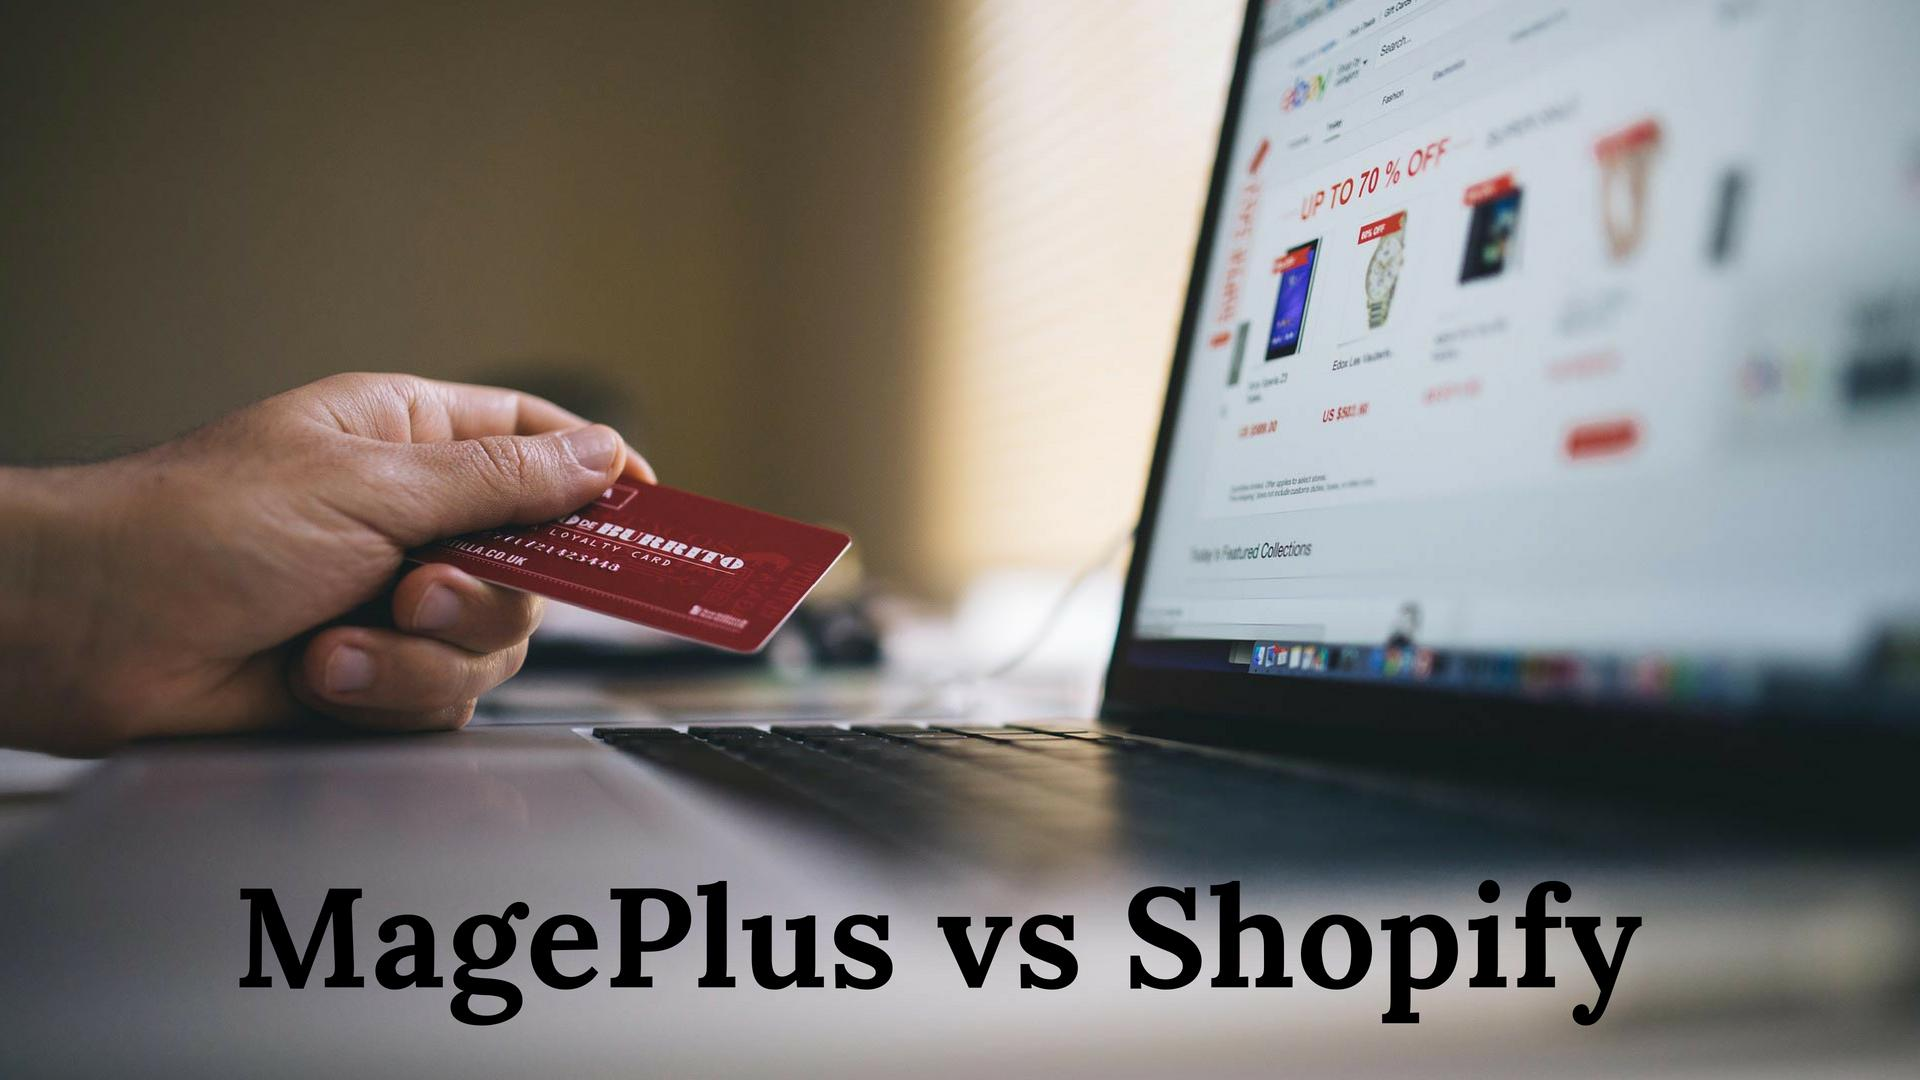 MagePlus vs Shopify